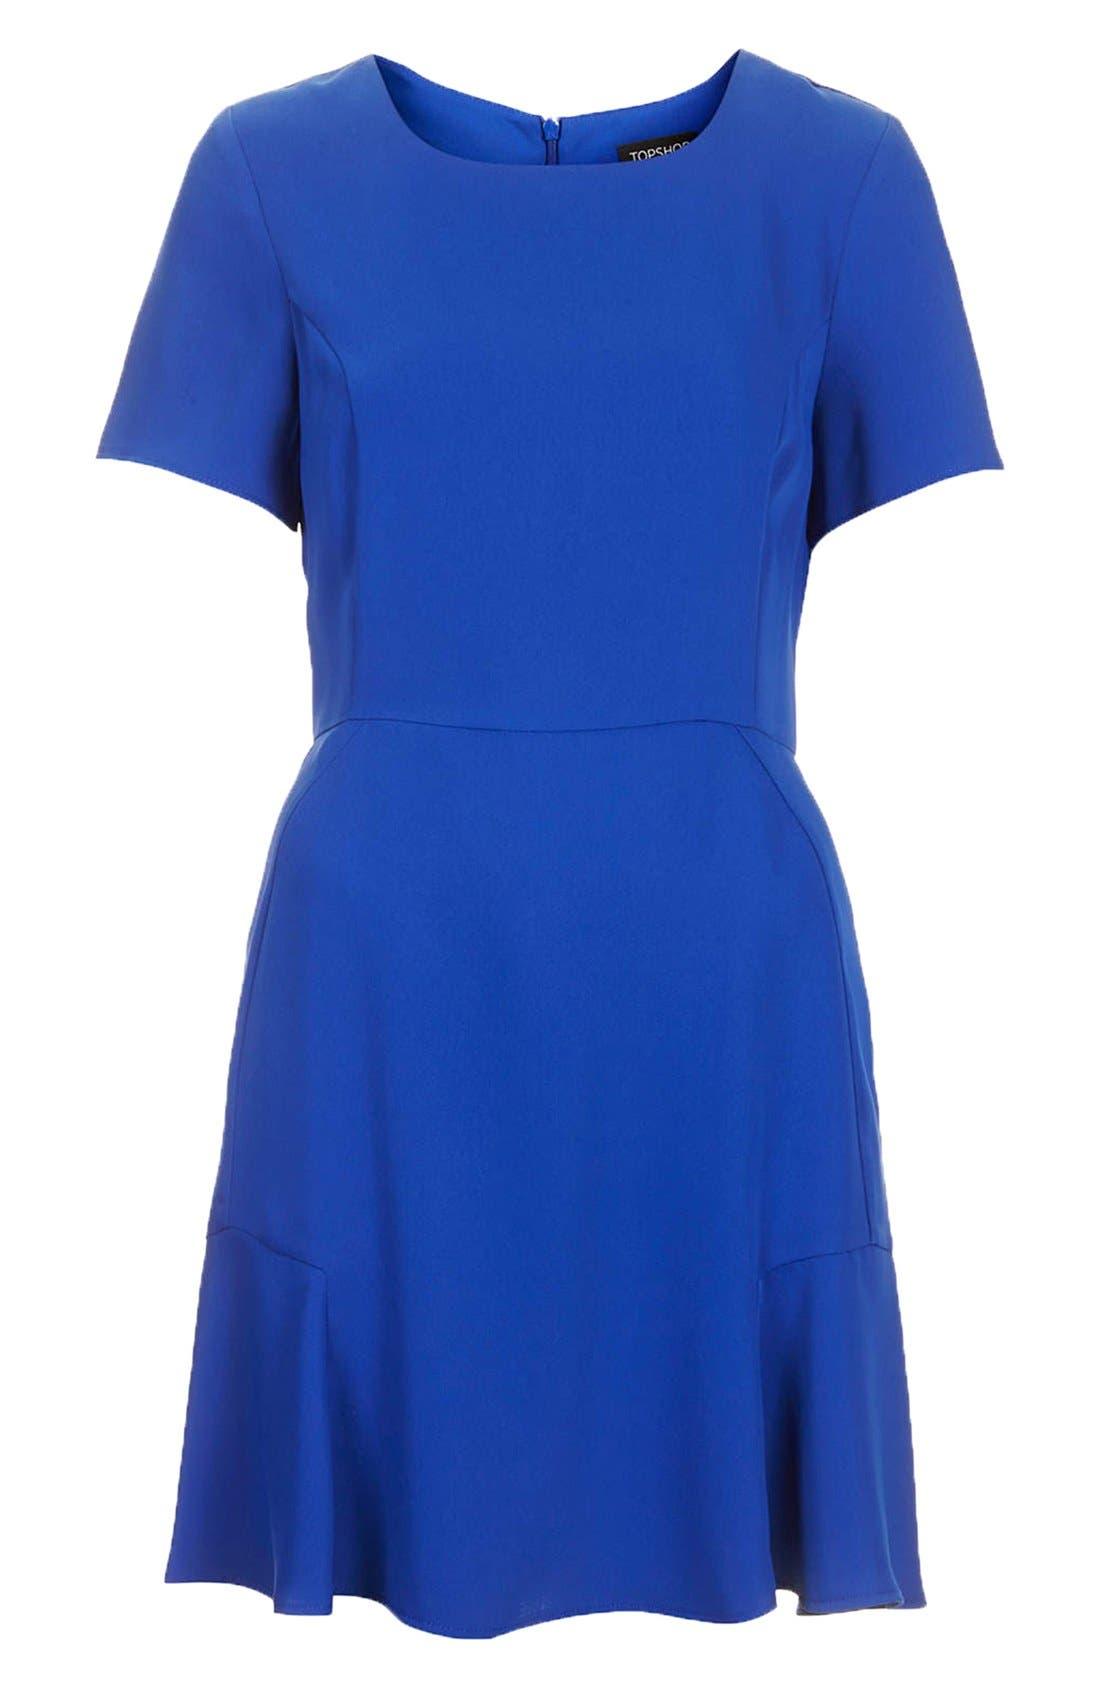 TOPSHOP, Crepe Fit & Flare Dress, Alternate thumbnail 3, color, 430